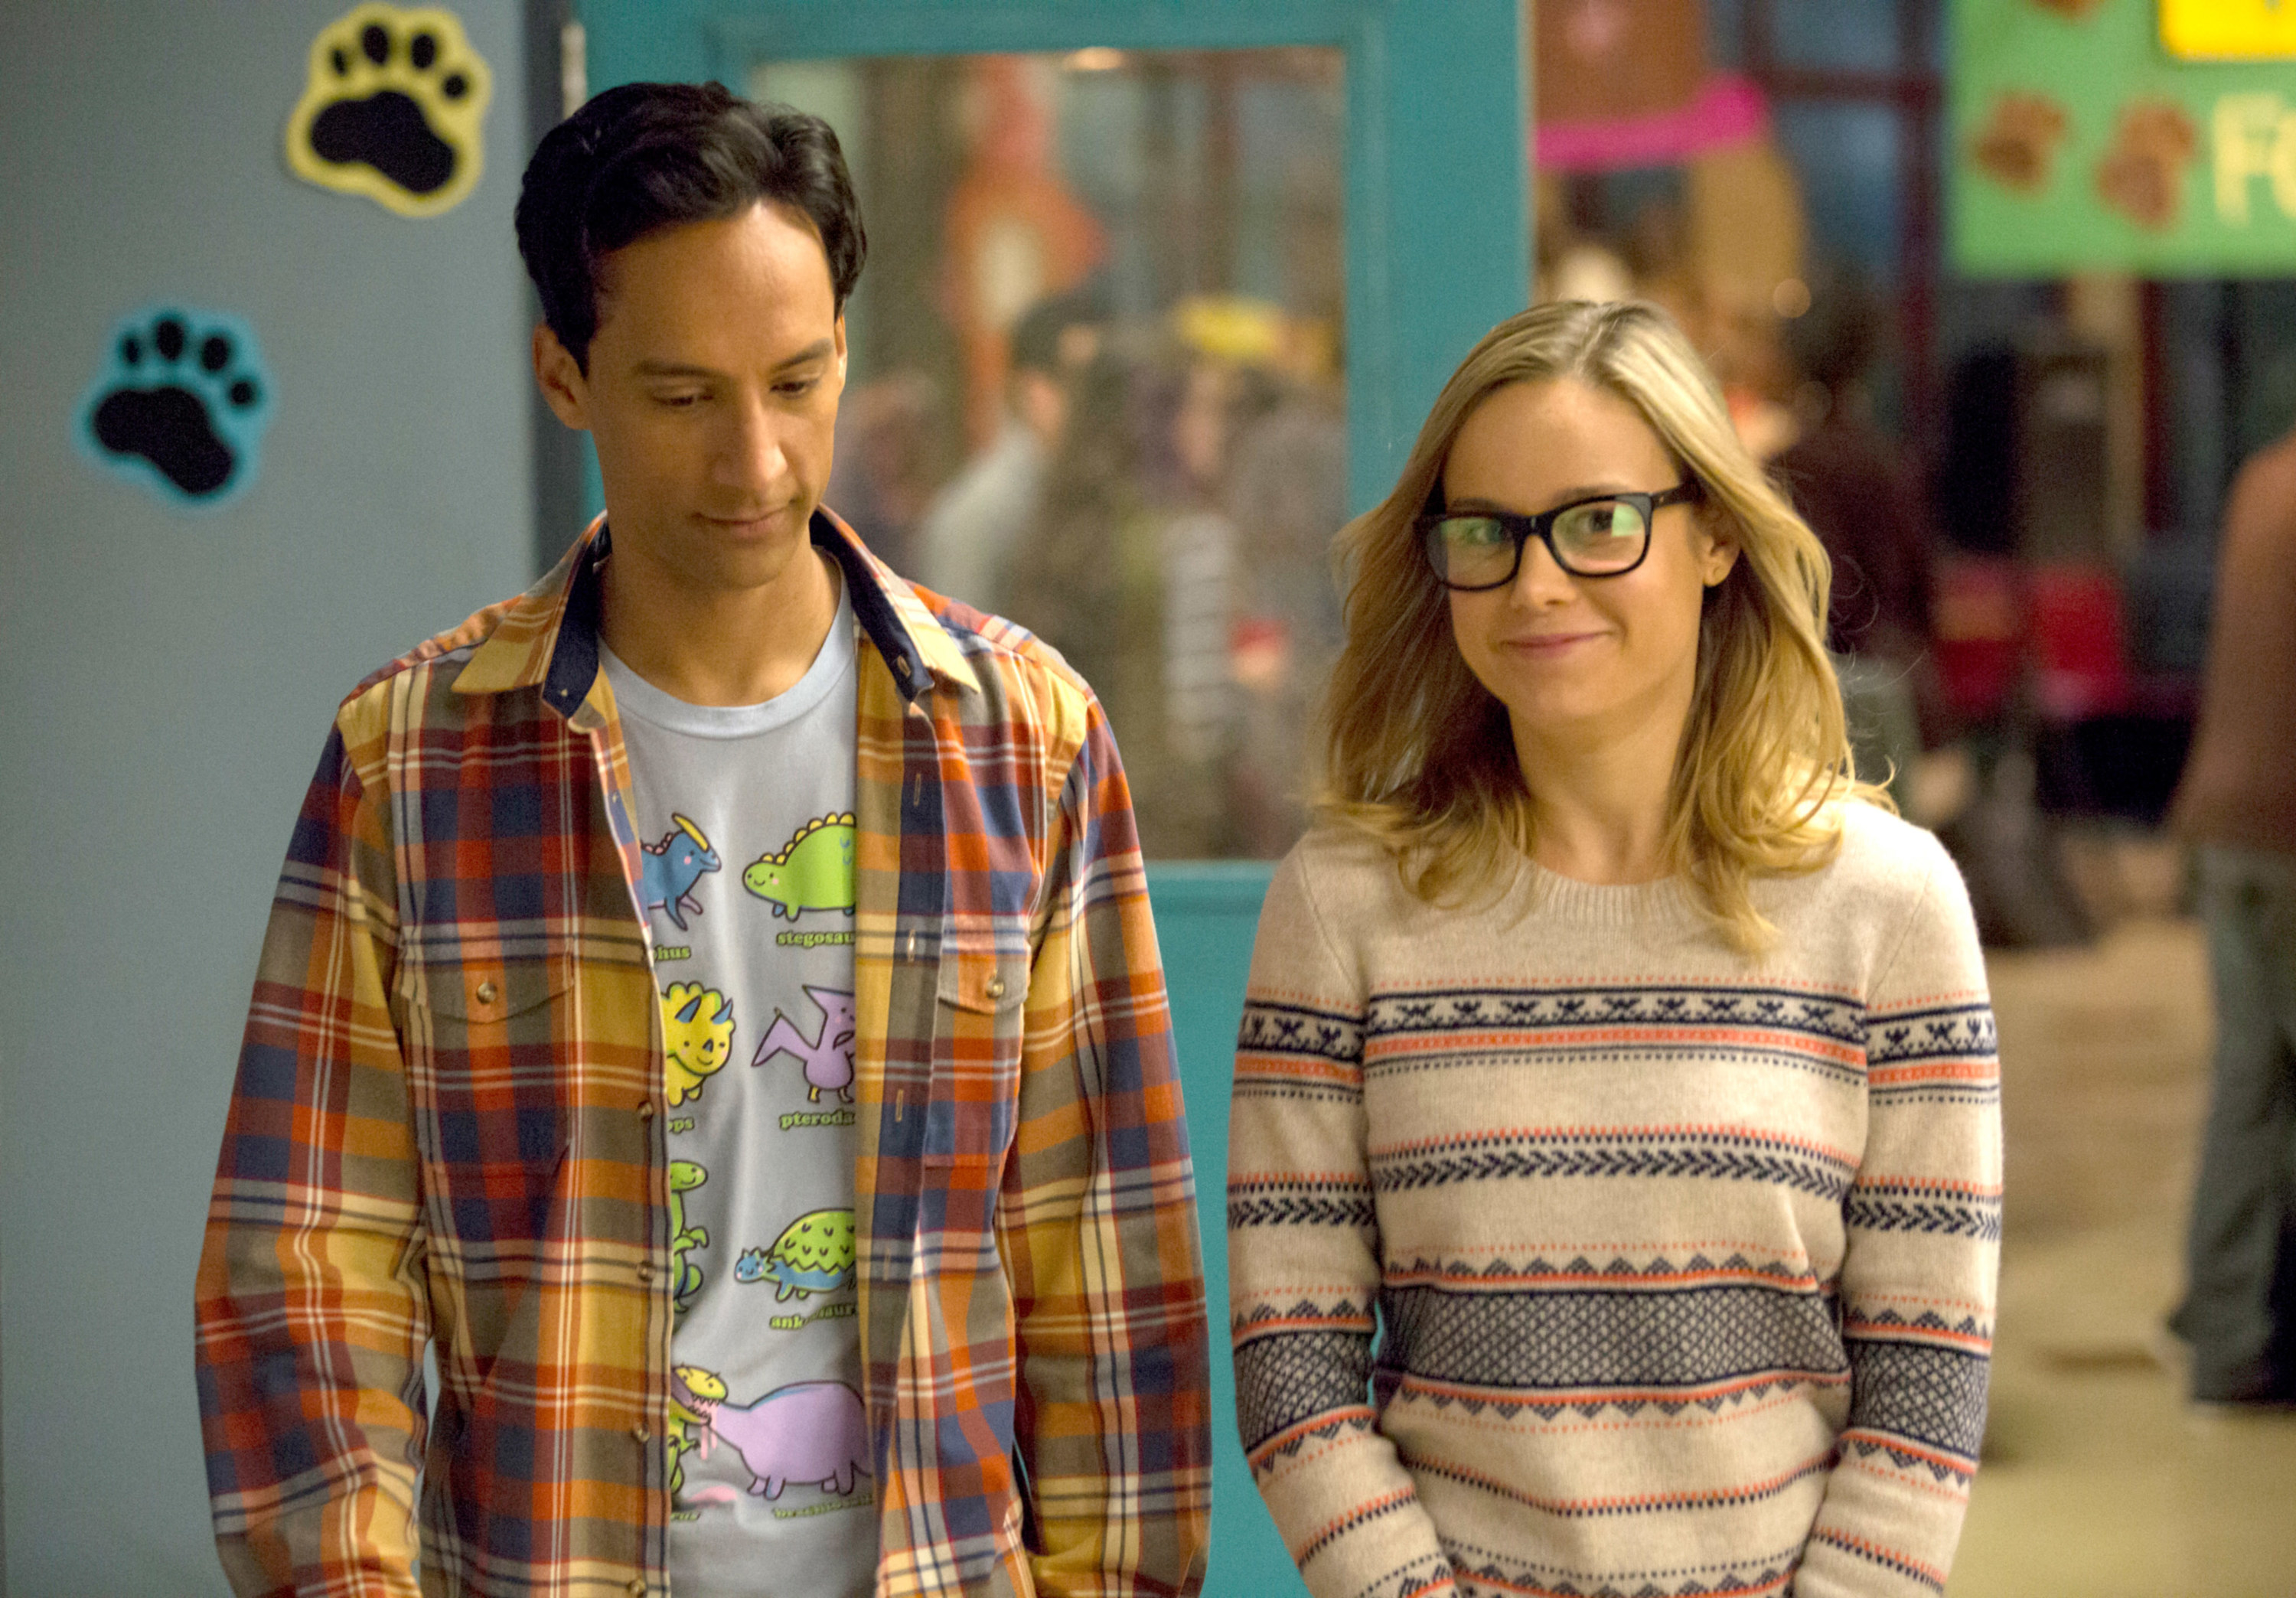 Brie next to Abed